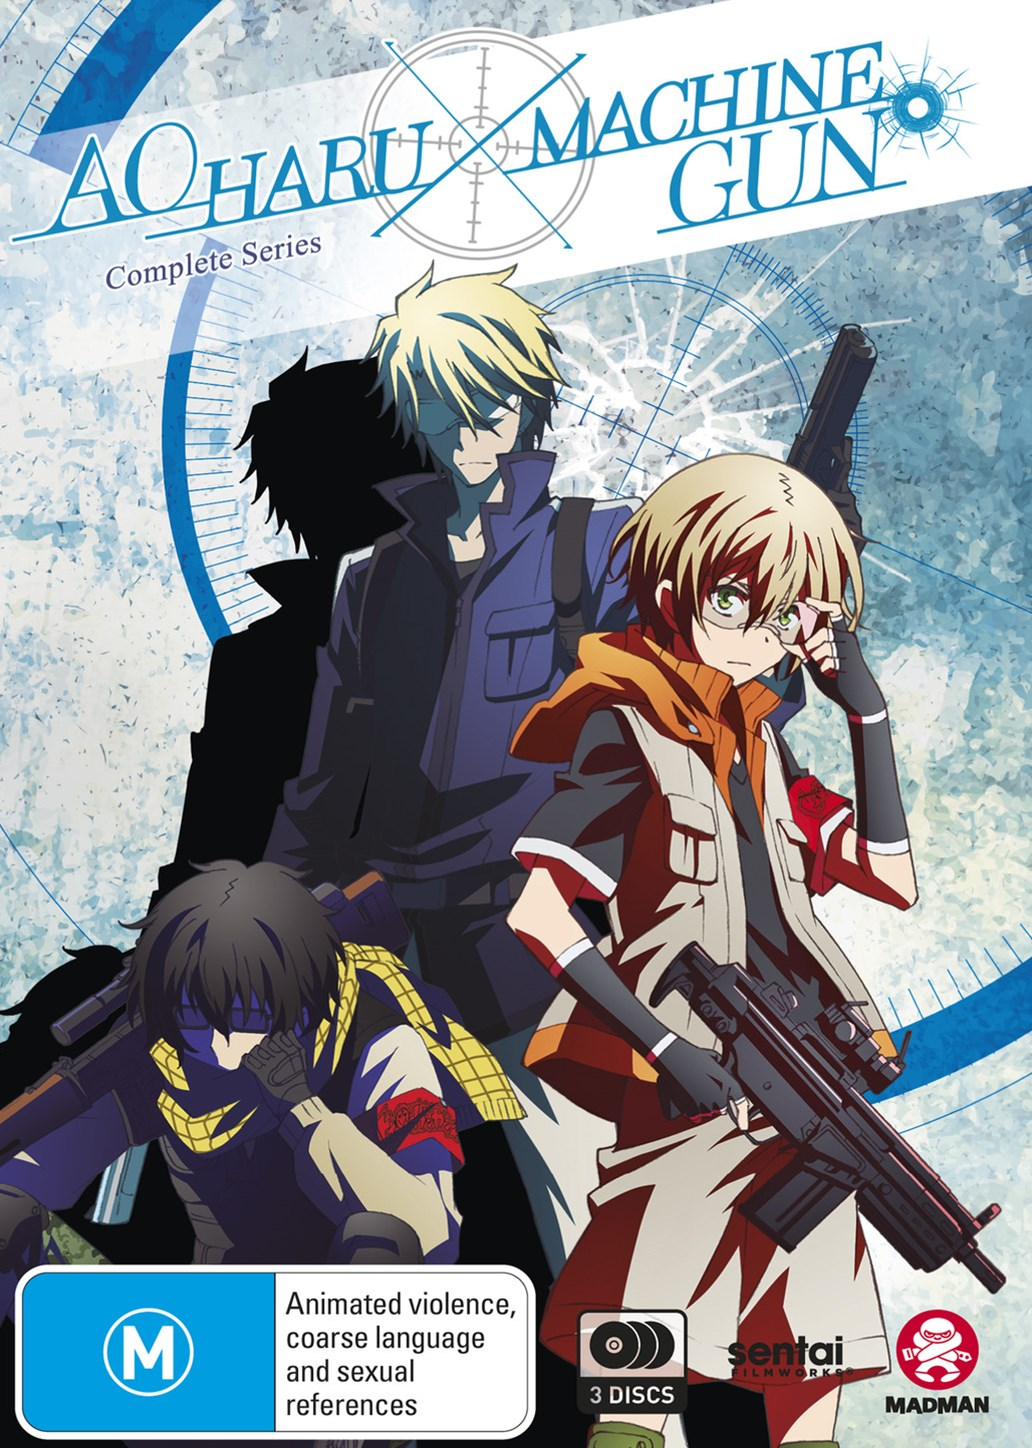 Aoharu X Machinegun: Complete Series